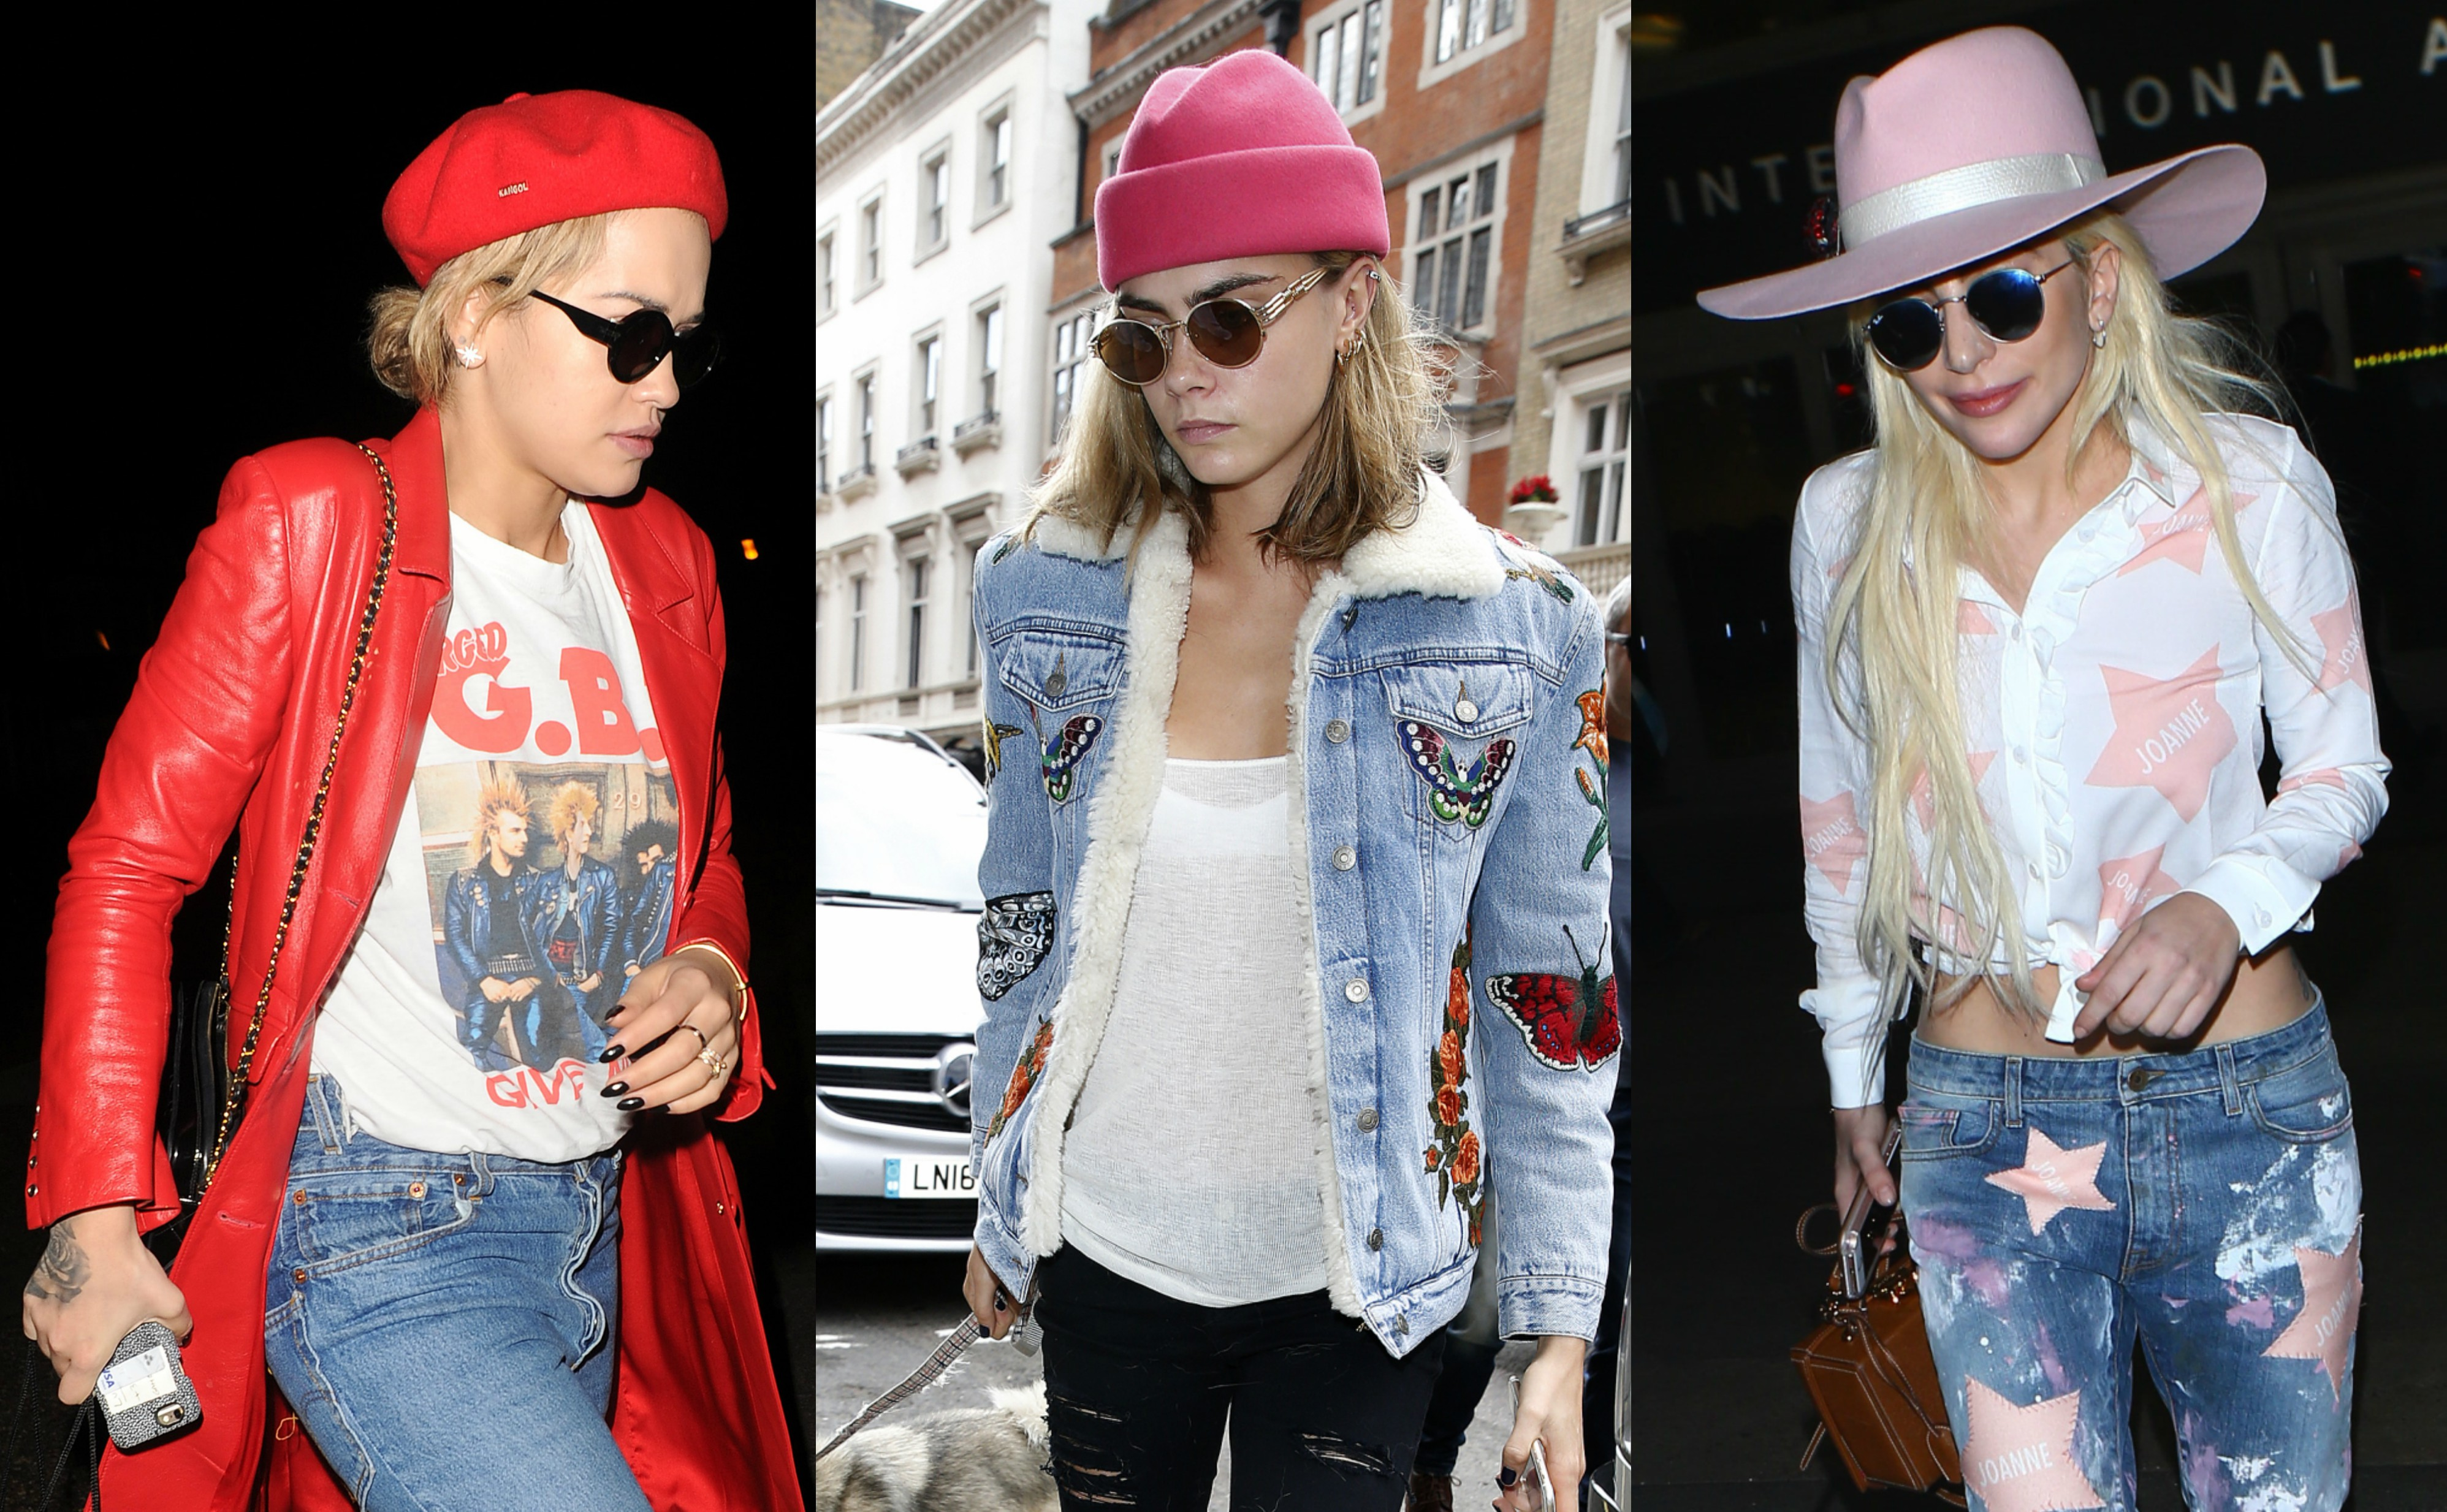 From the Hadid sisters, to Lady Gaga, to Jane Fonda, here are 15 celebrities that sure love a good hat. (Photos: WENN)